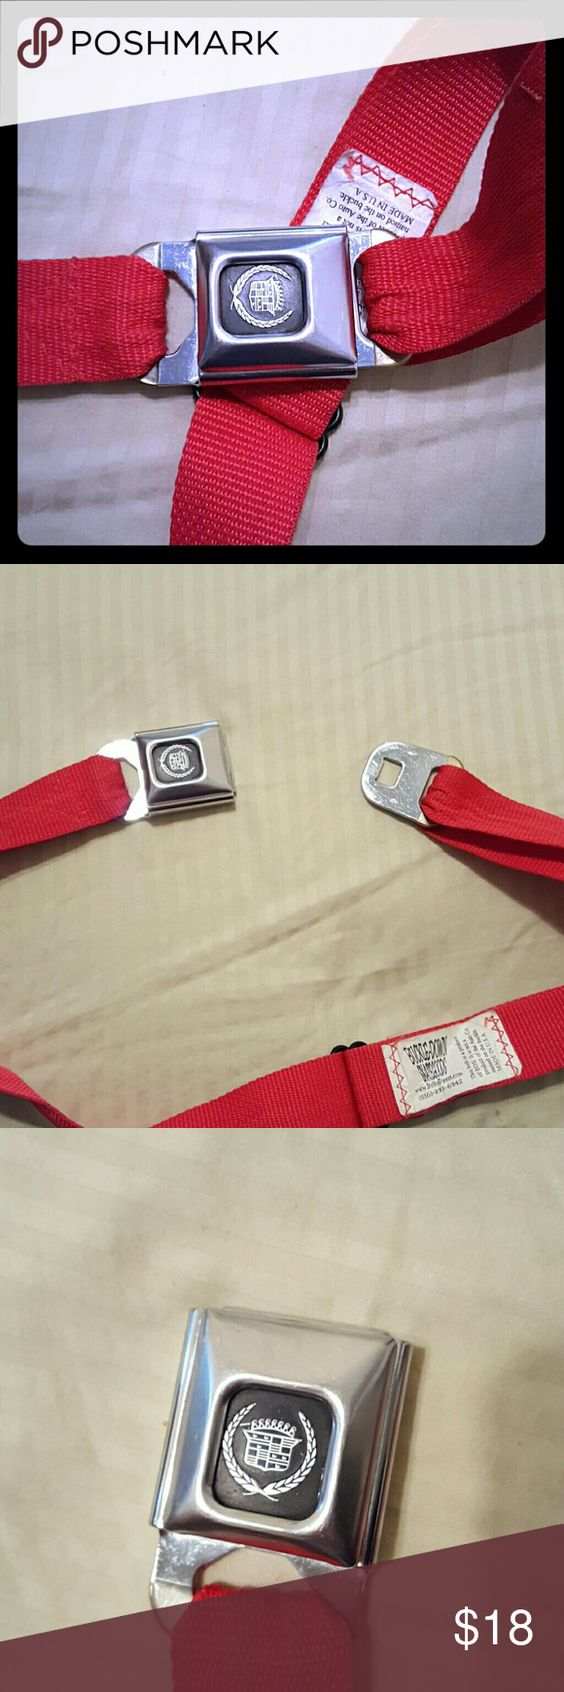 Cadillac SeatBelt Belt This awesome red belt is adjustable. Item is gently worn without rips or damage Accessories Belts